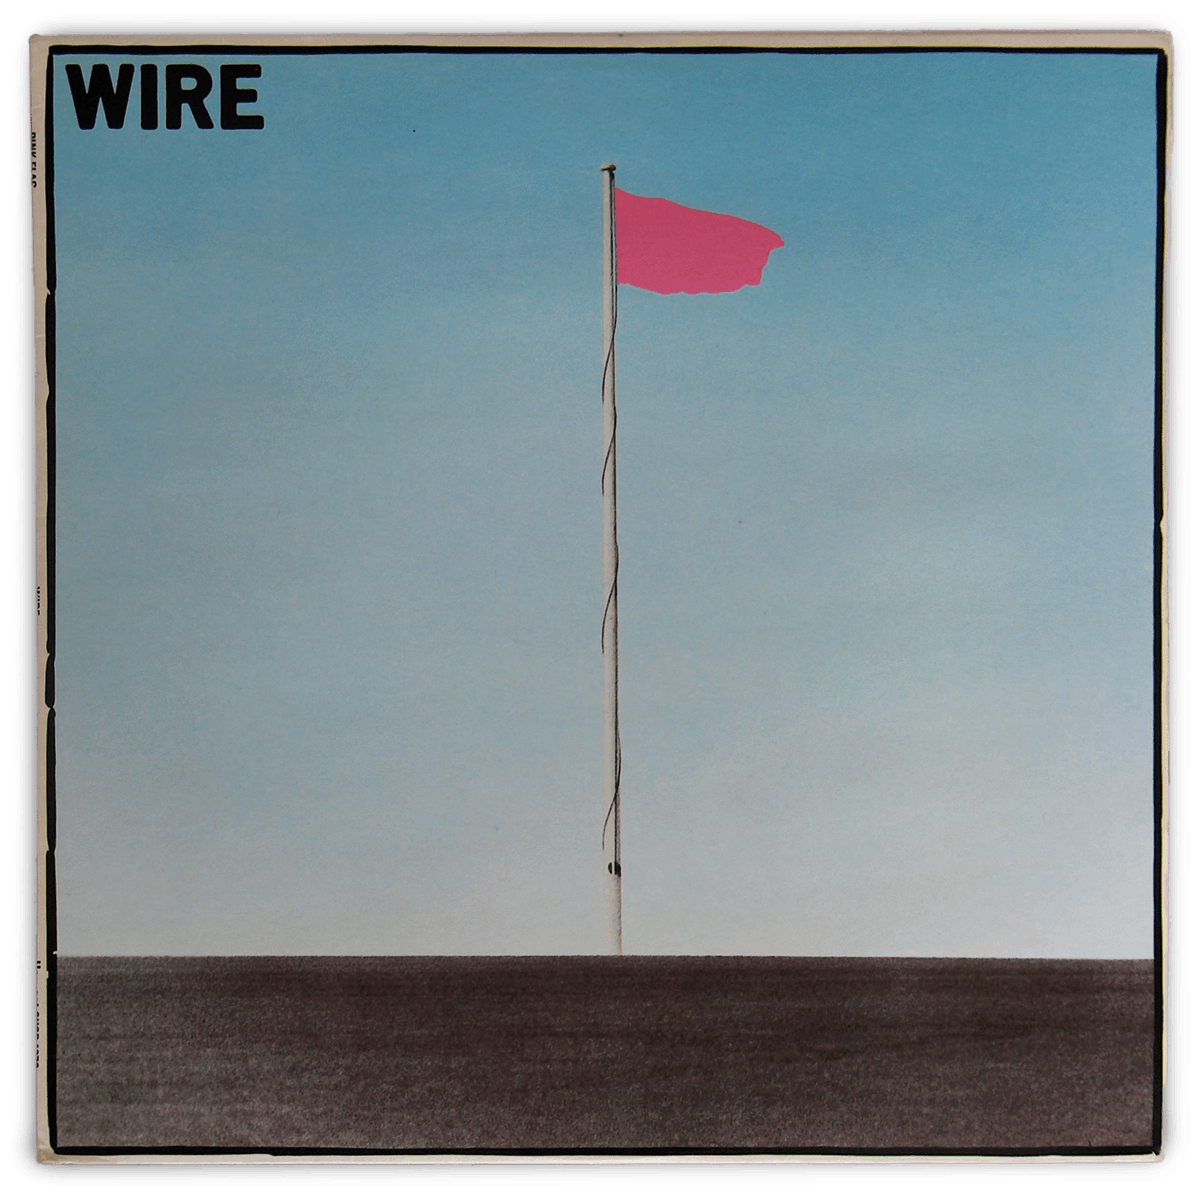 A vinyl record by Wire